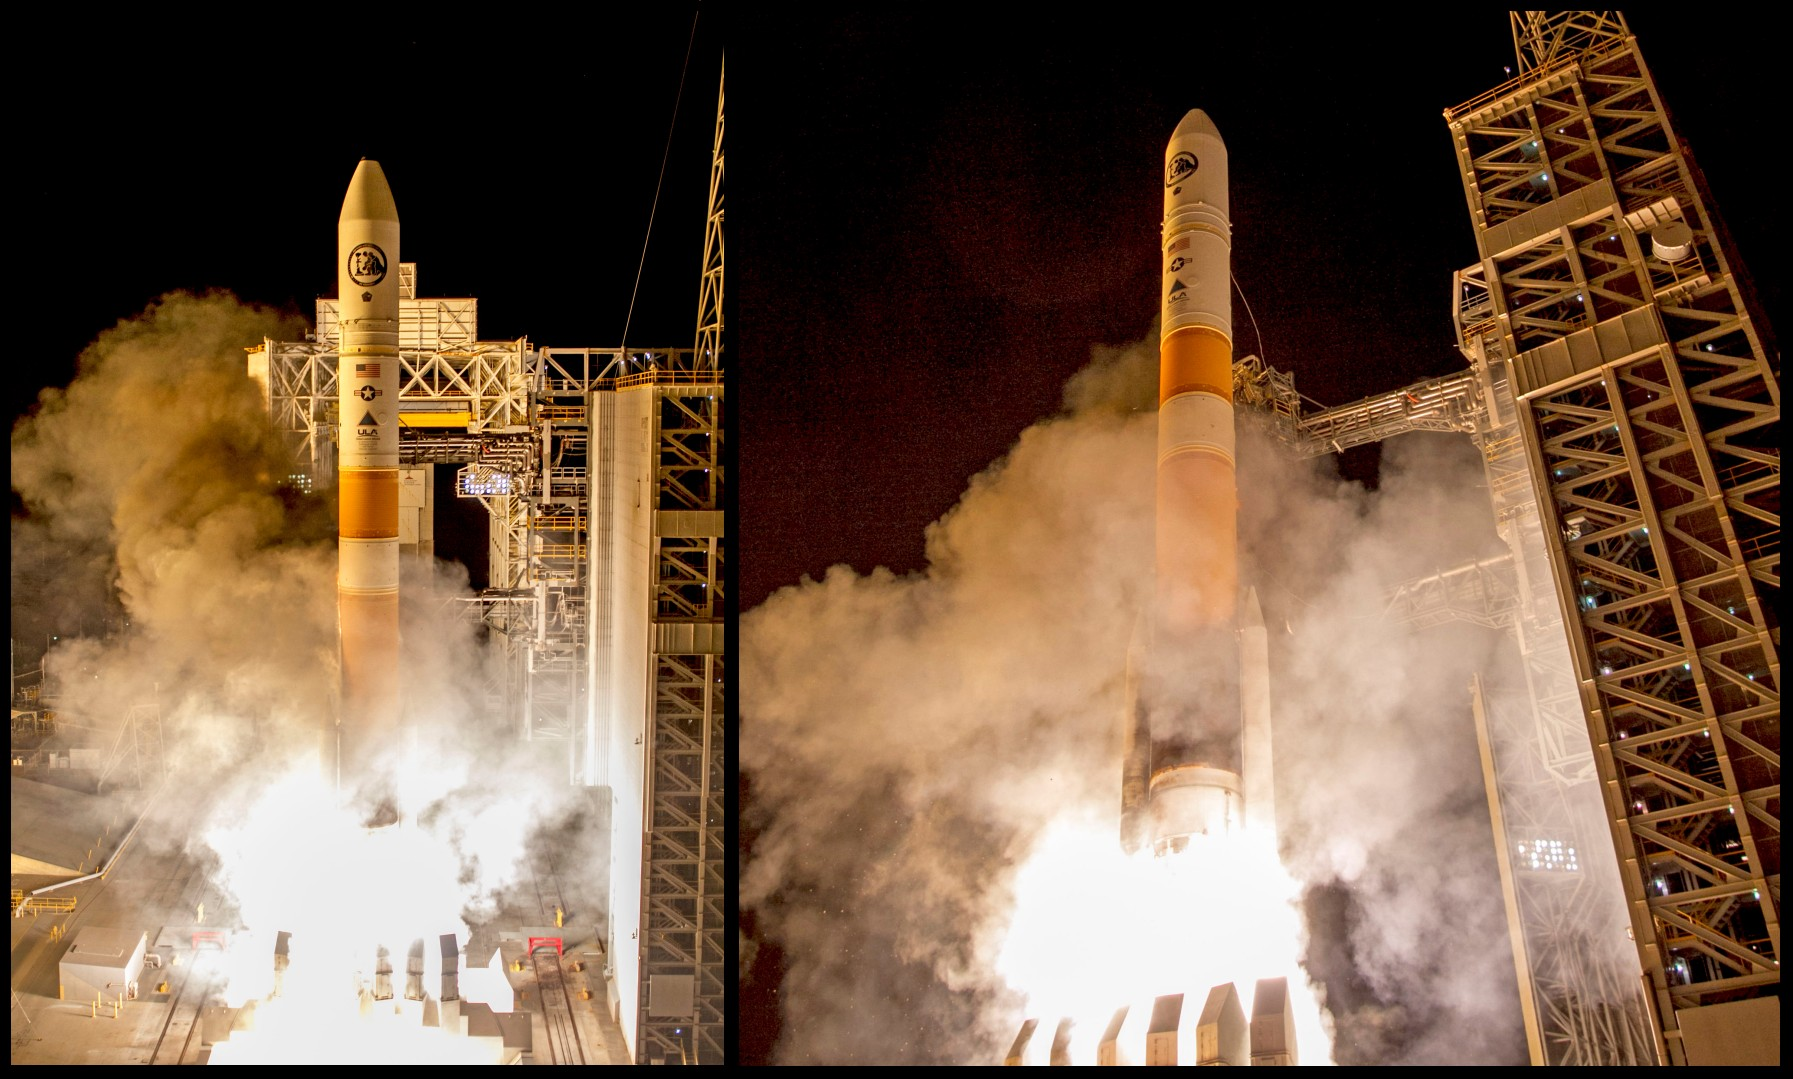 Lancement  - Satellite radar Topaz - NROL-45 - National Reconnaissance Office - NRO - Delta 4M - United Launch Alliance - ULA